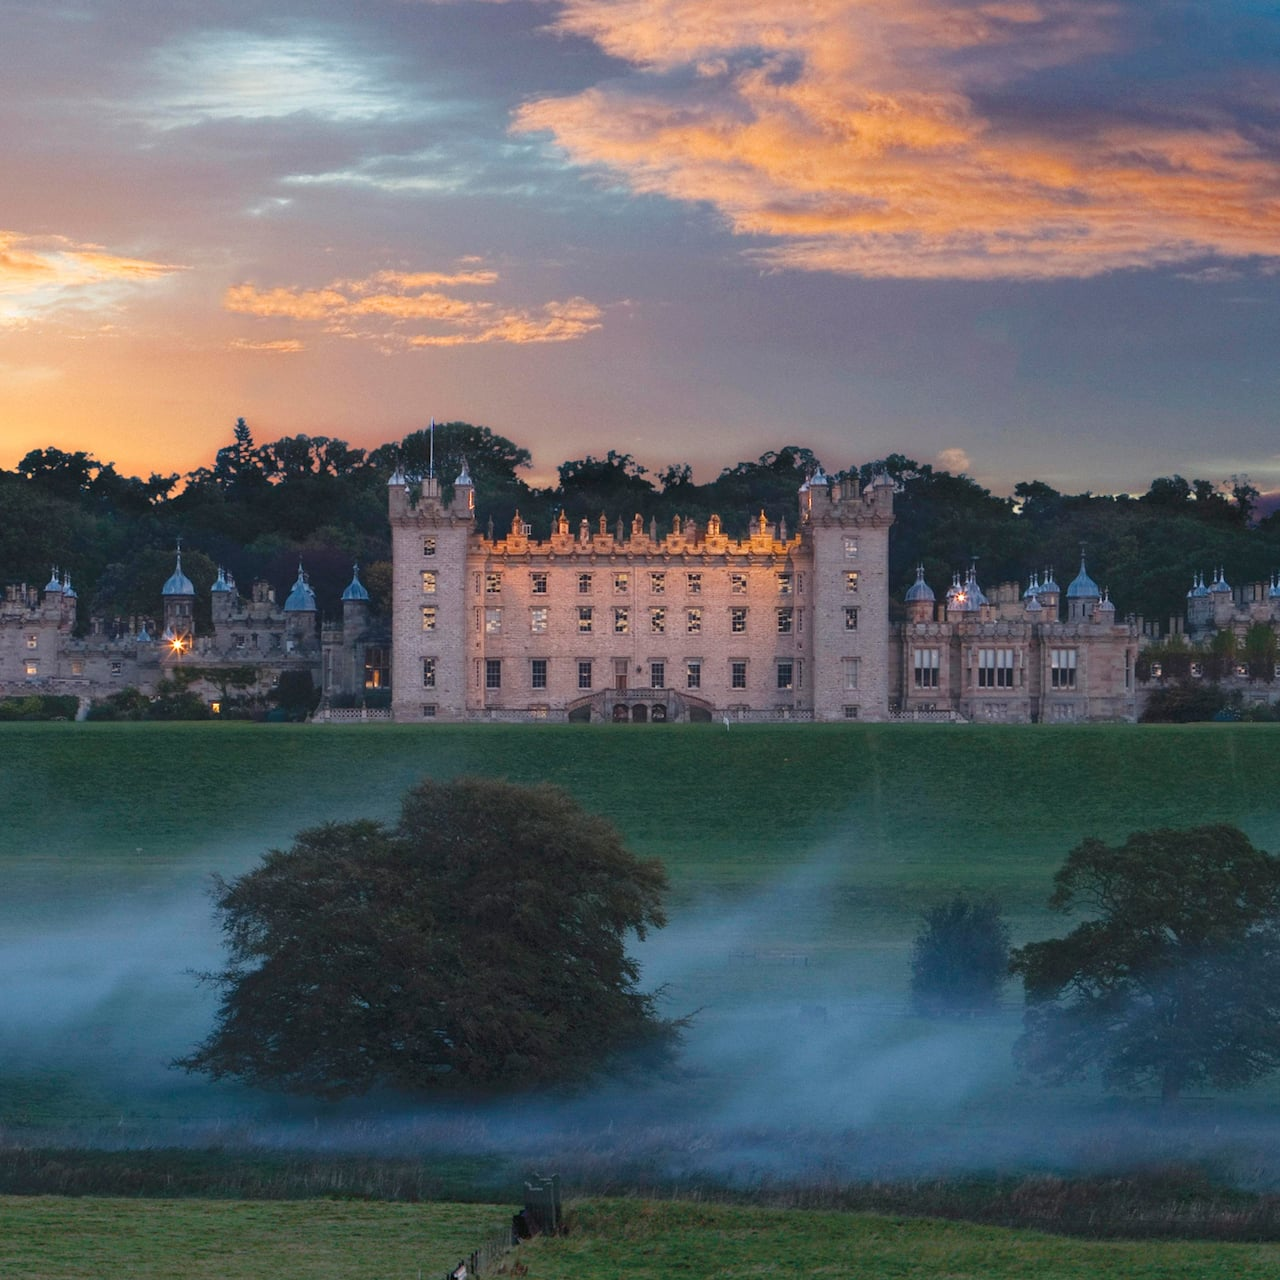 The majestic Floors Castle sits perched atop a grassy plateau